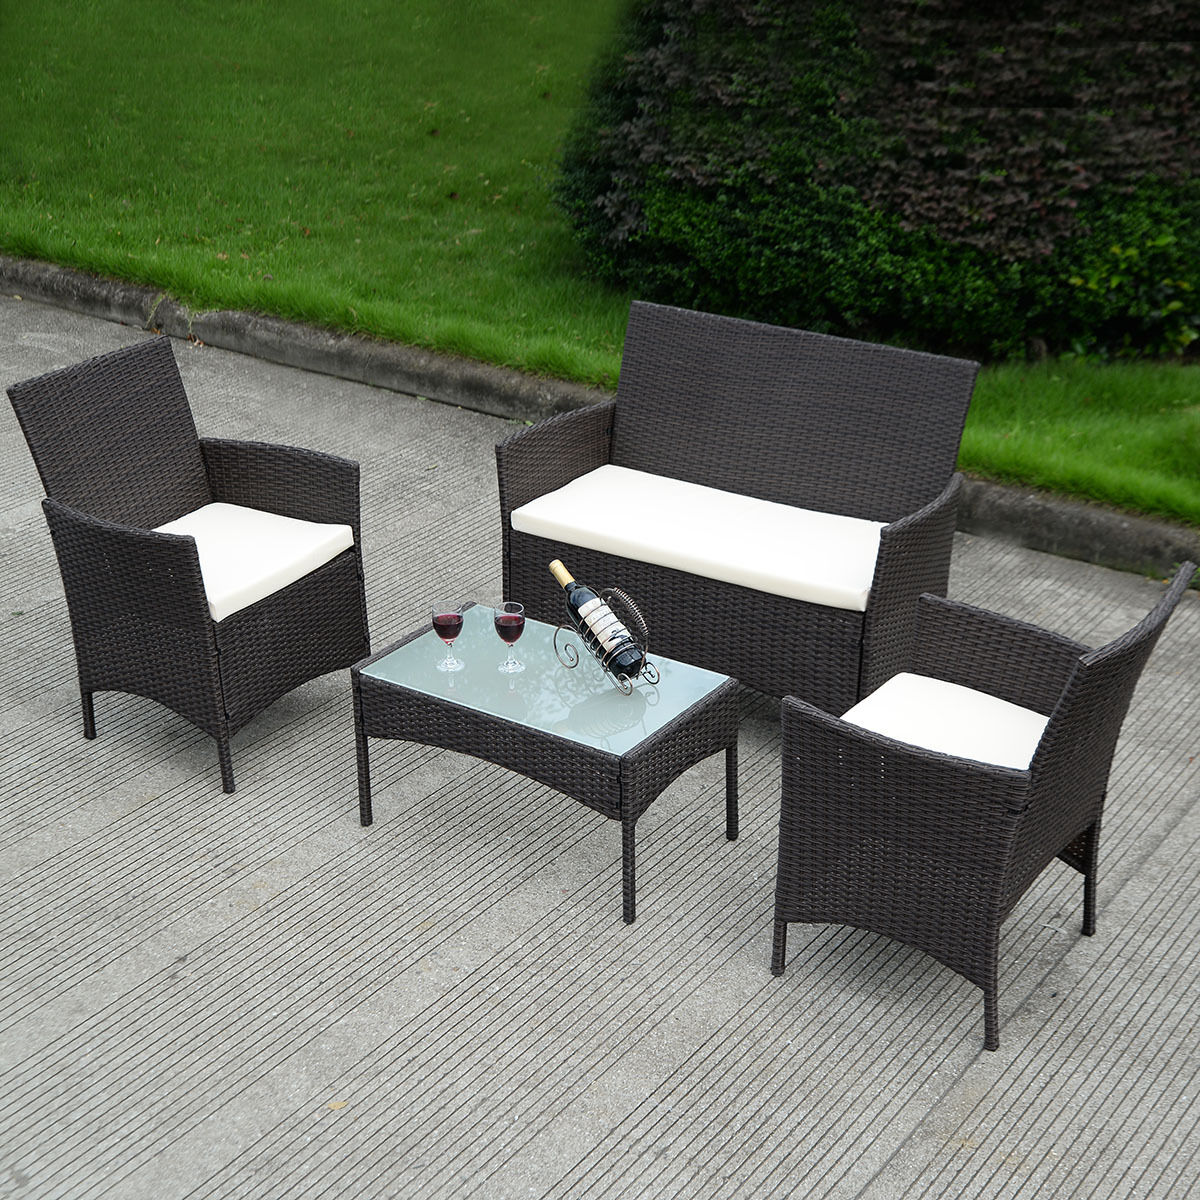 Costway 4 PC Patio Rattan Wicker Chair Sofa Table Set Outdoor Garden Furniture Cushioned by Costway